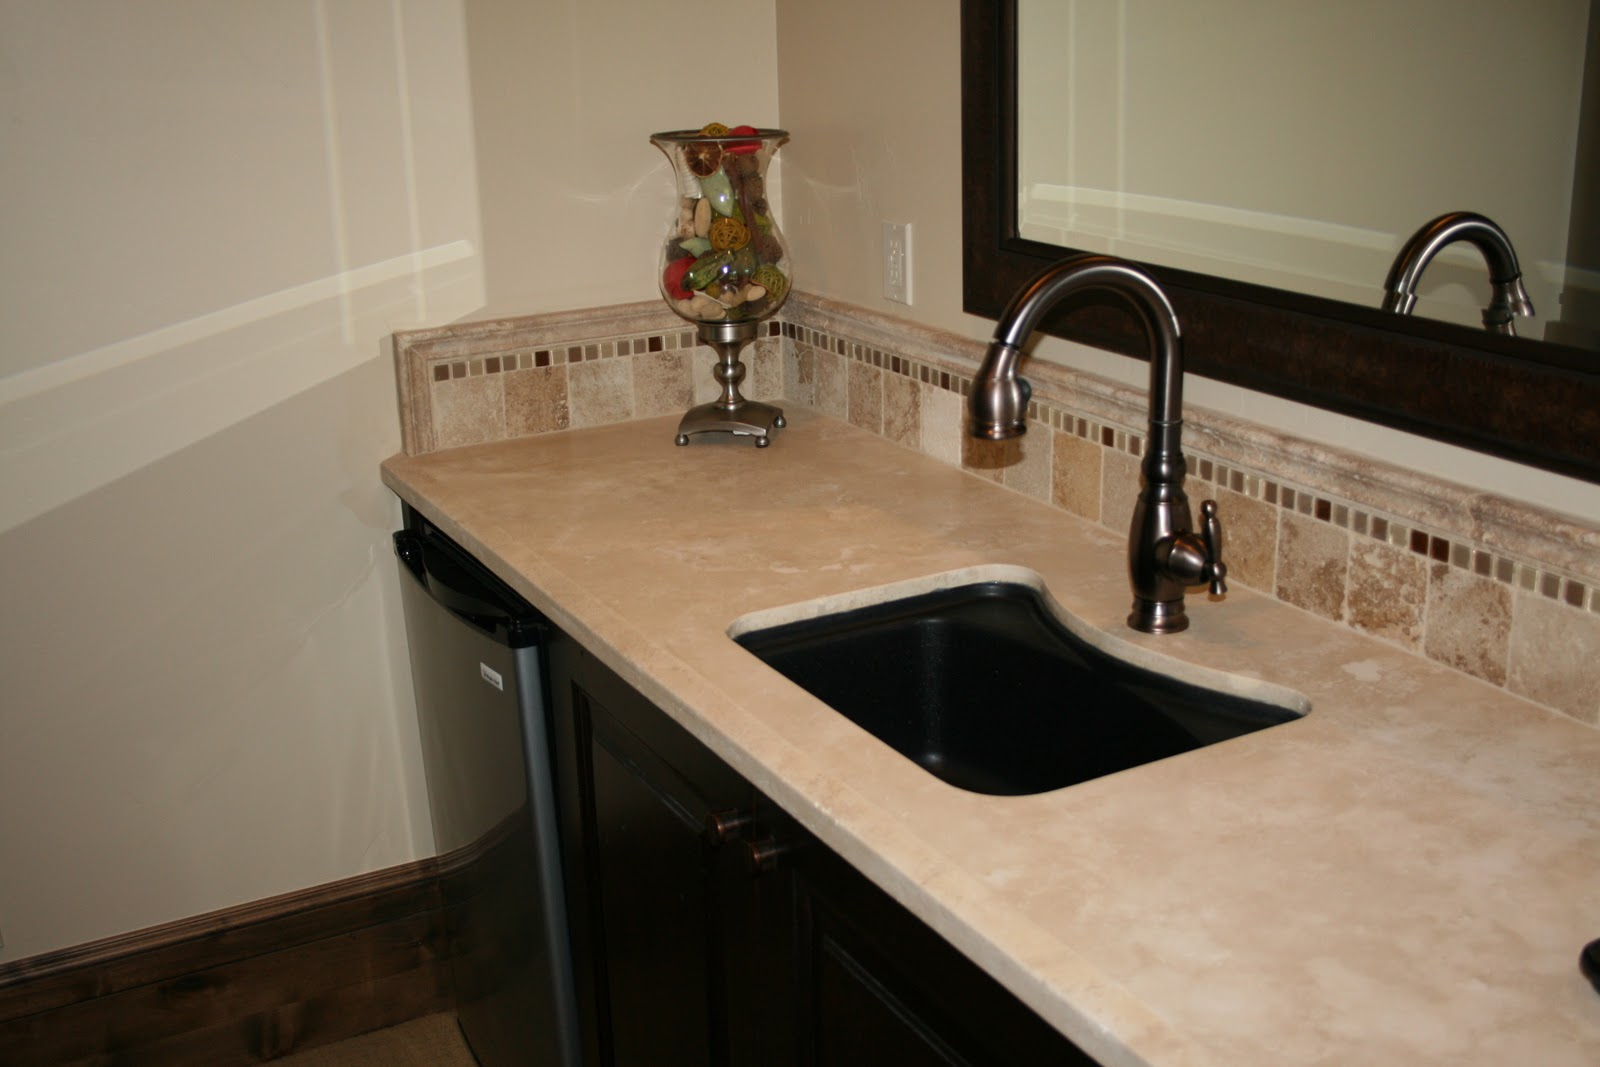 kitchen countertops tile the granite gurus durango travertine bar 1021